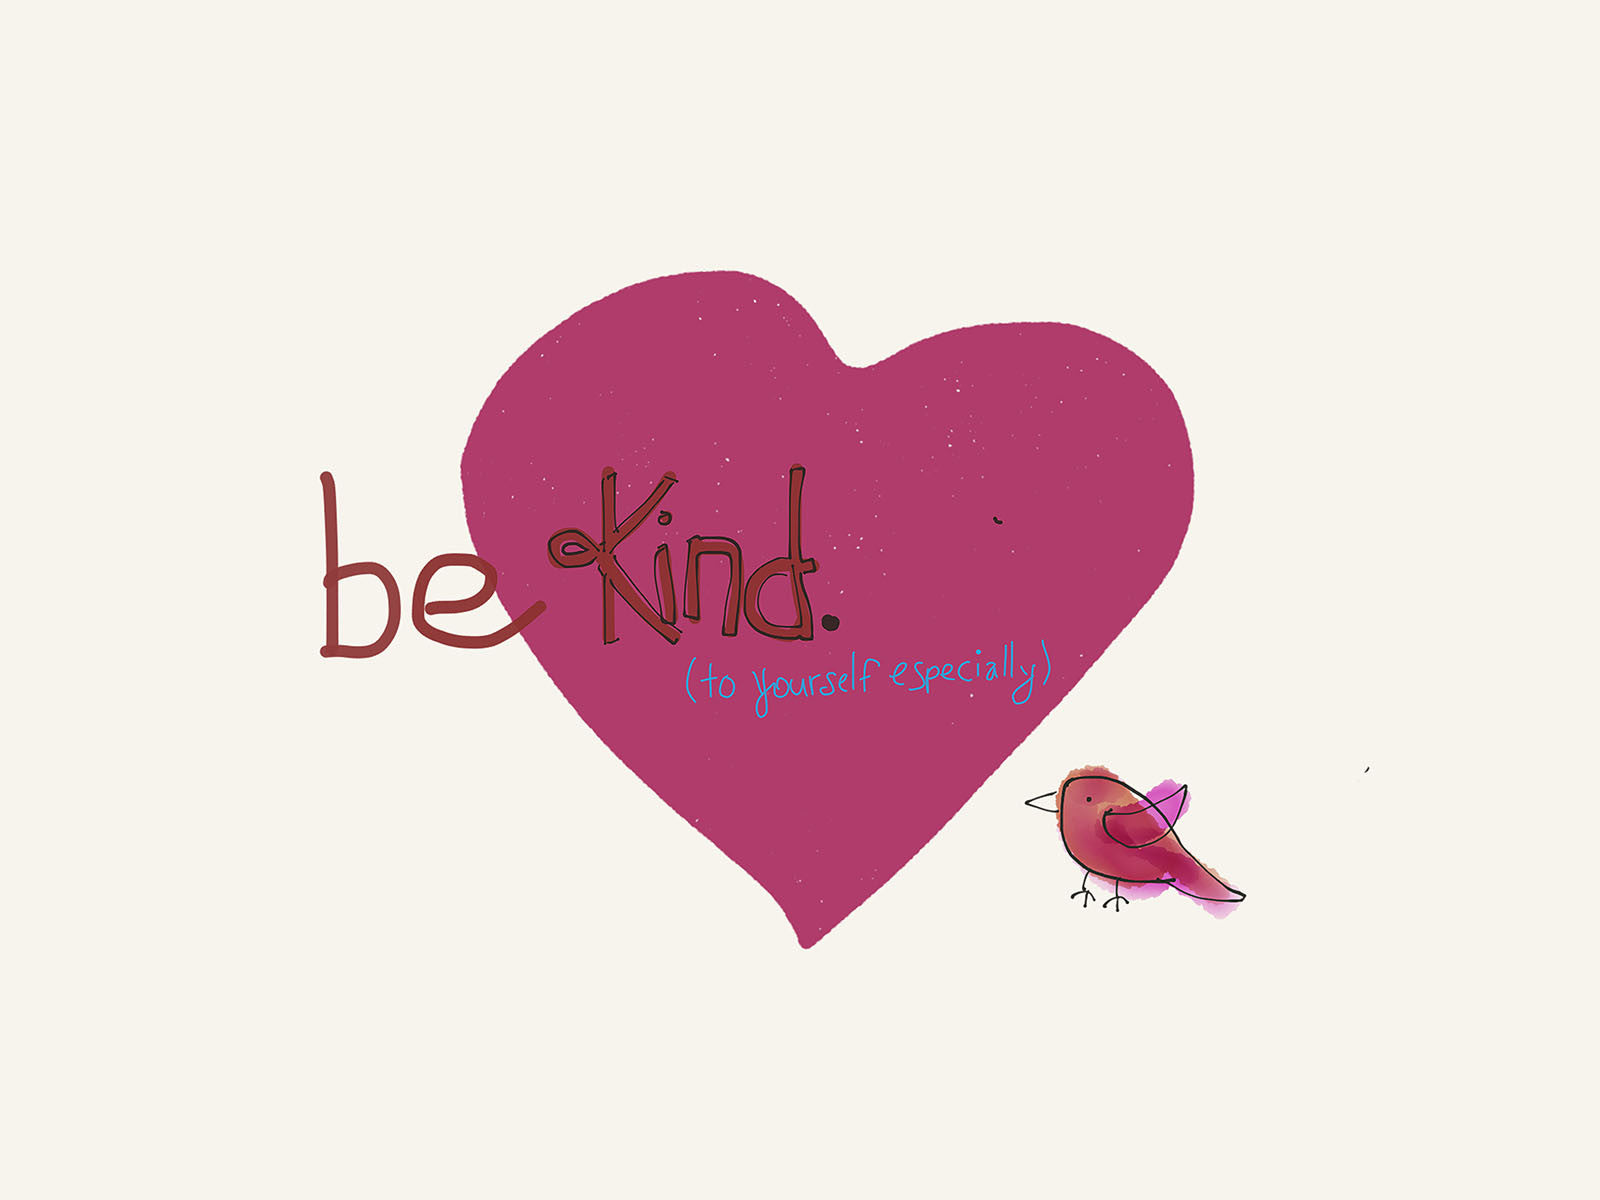 Be kind to yourself affirmation art watercolor bird heart